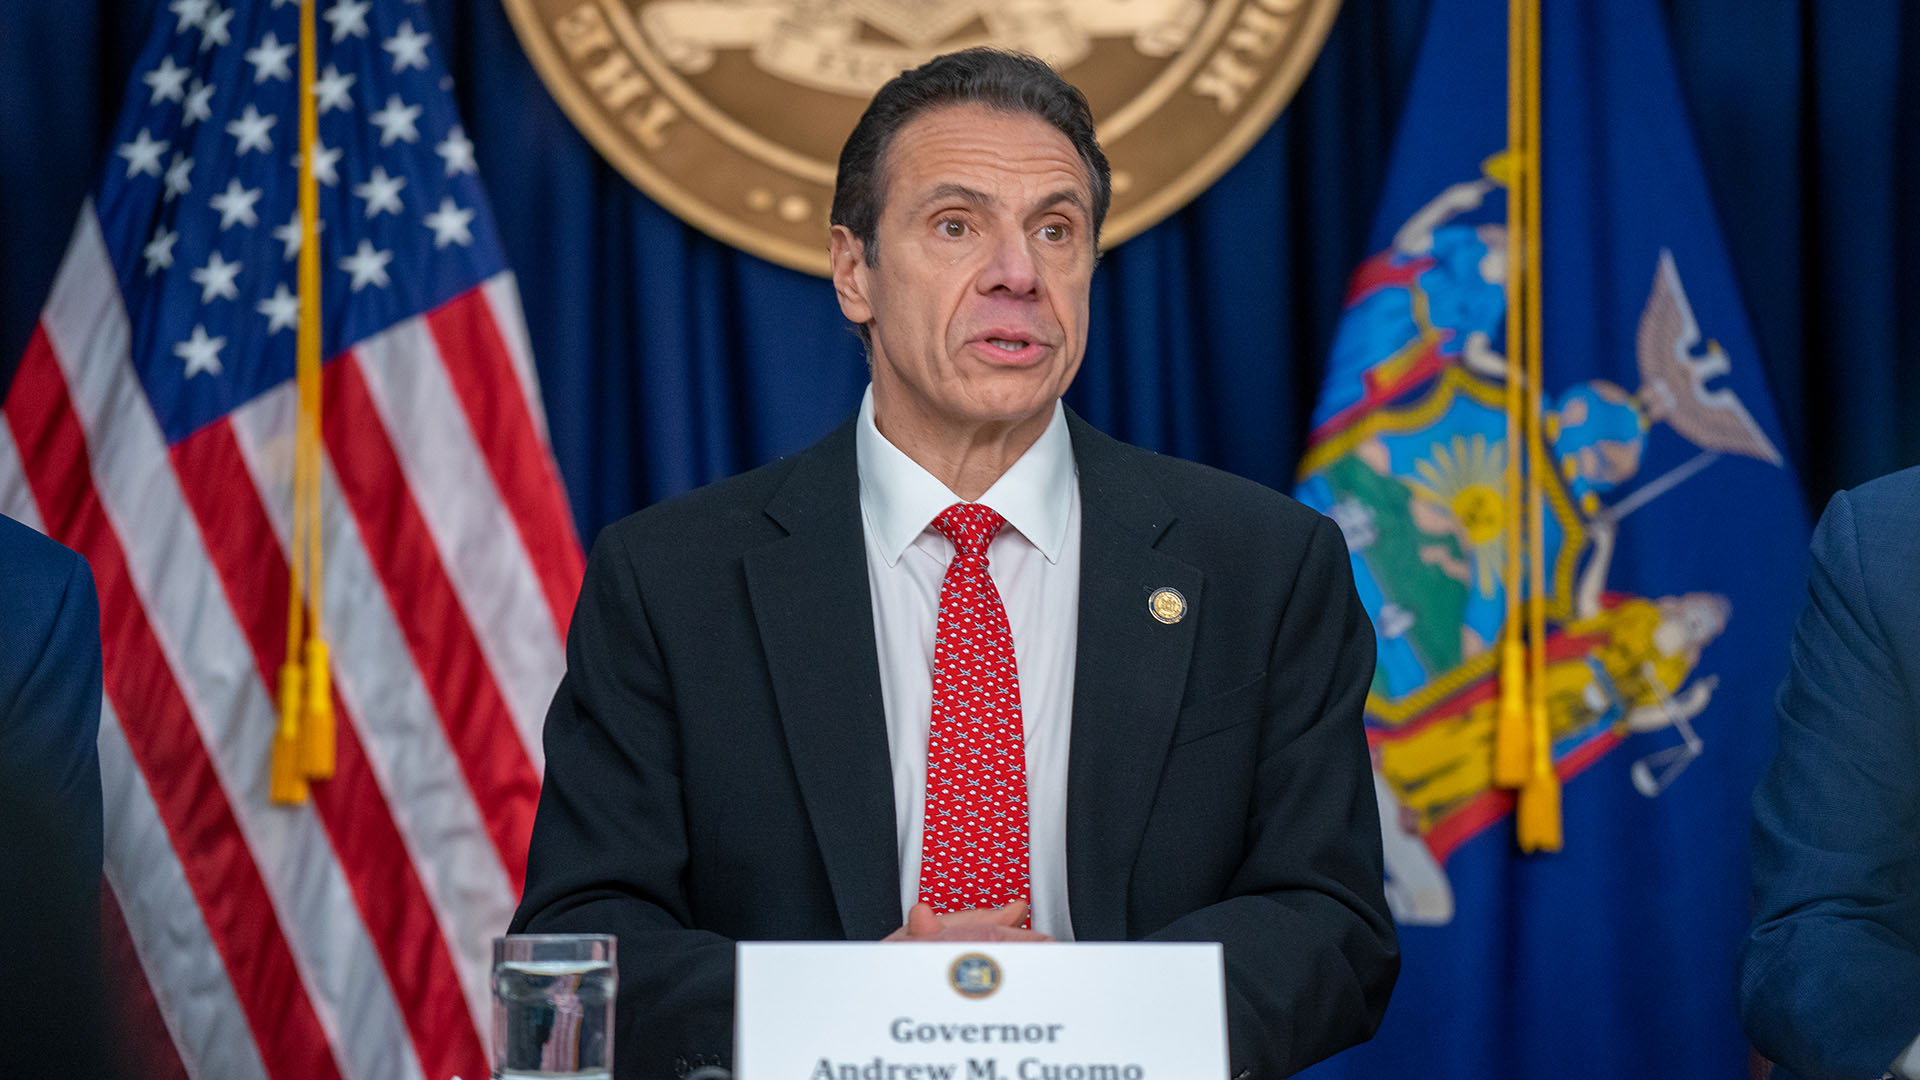 Paid Sick Leave and Family Leave for NYS Workers Impacted by COVID-19